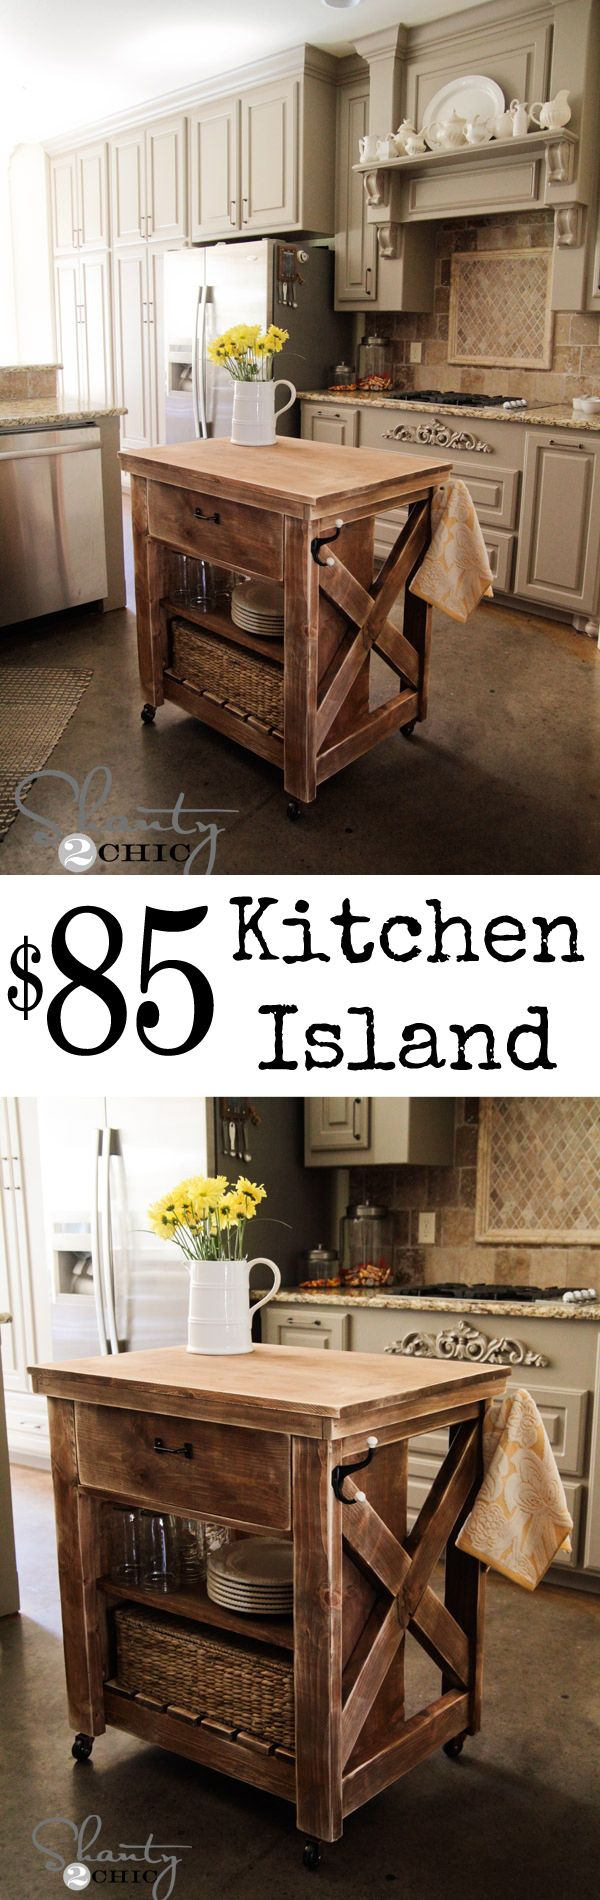 Diy Kitchen Island Ideas 275 best diy/kitchen decor images on pinterest | home, kitchen and